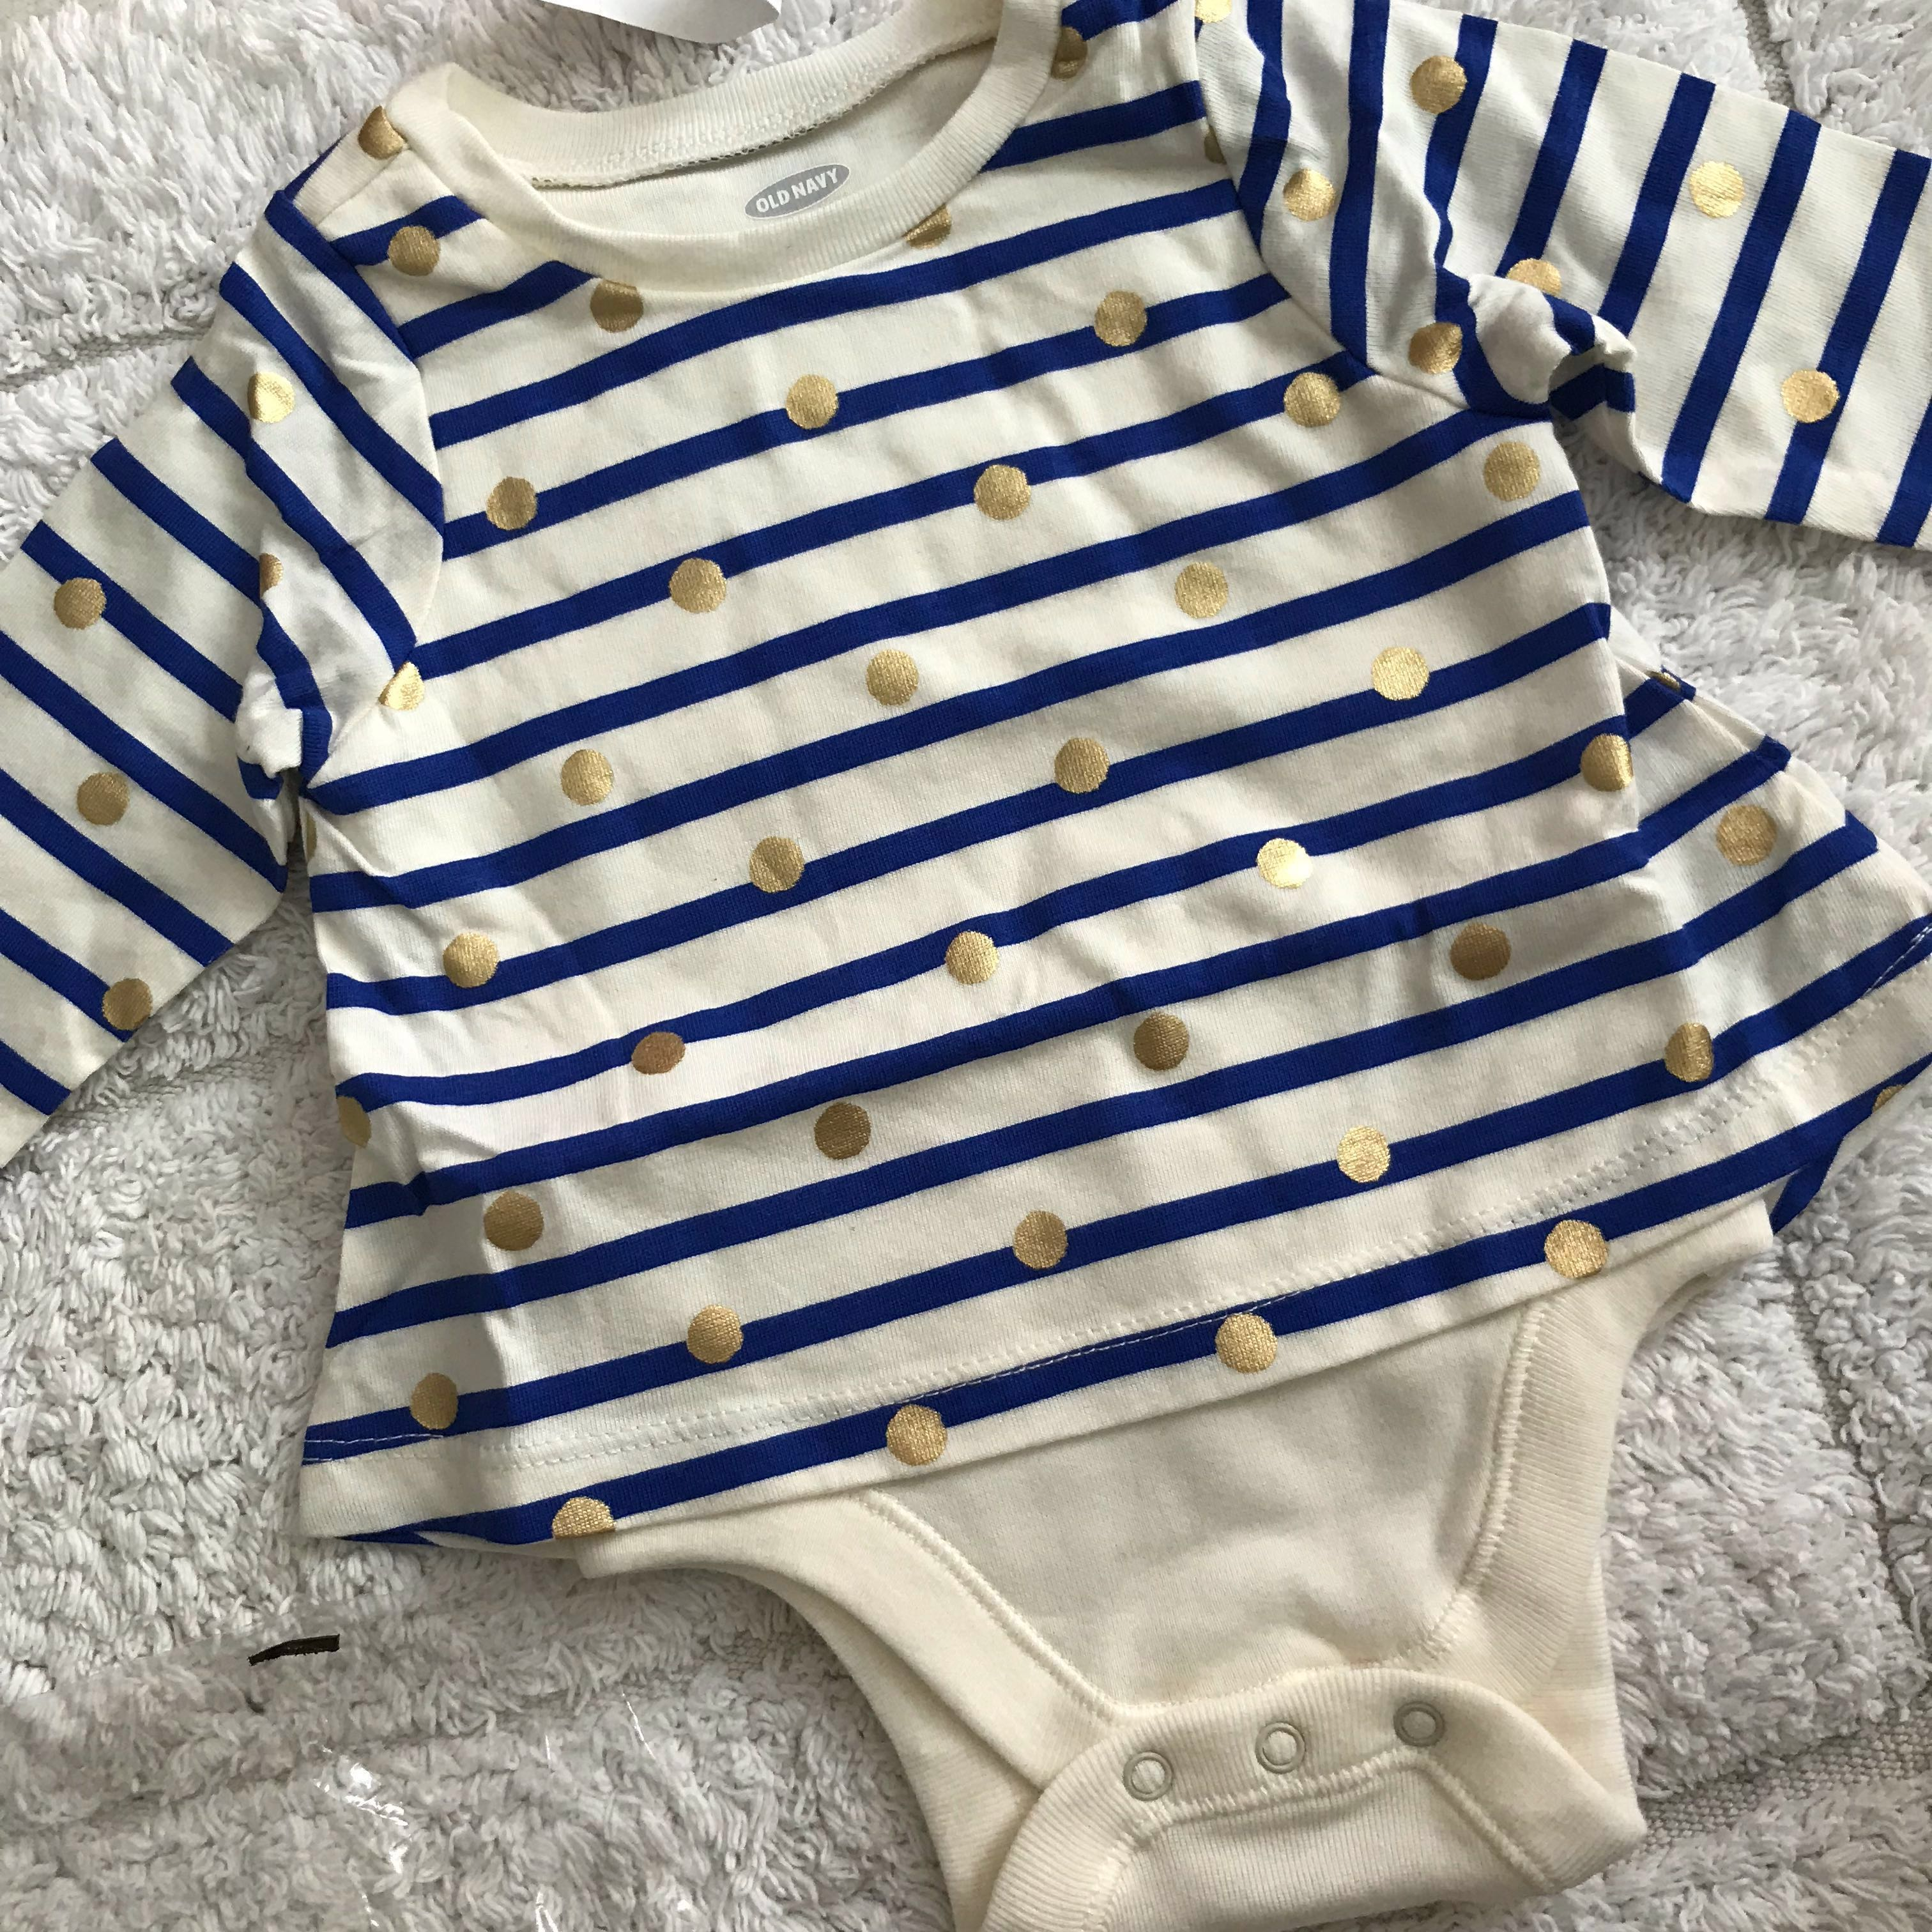 73550f478 BN Old Navy Baby Girl Festive Gold Dots and Stripes Romper One Piece ...